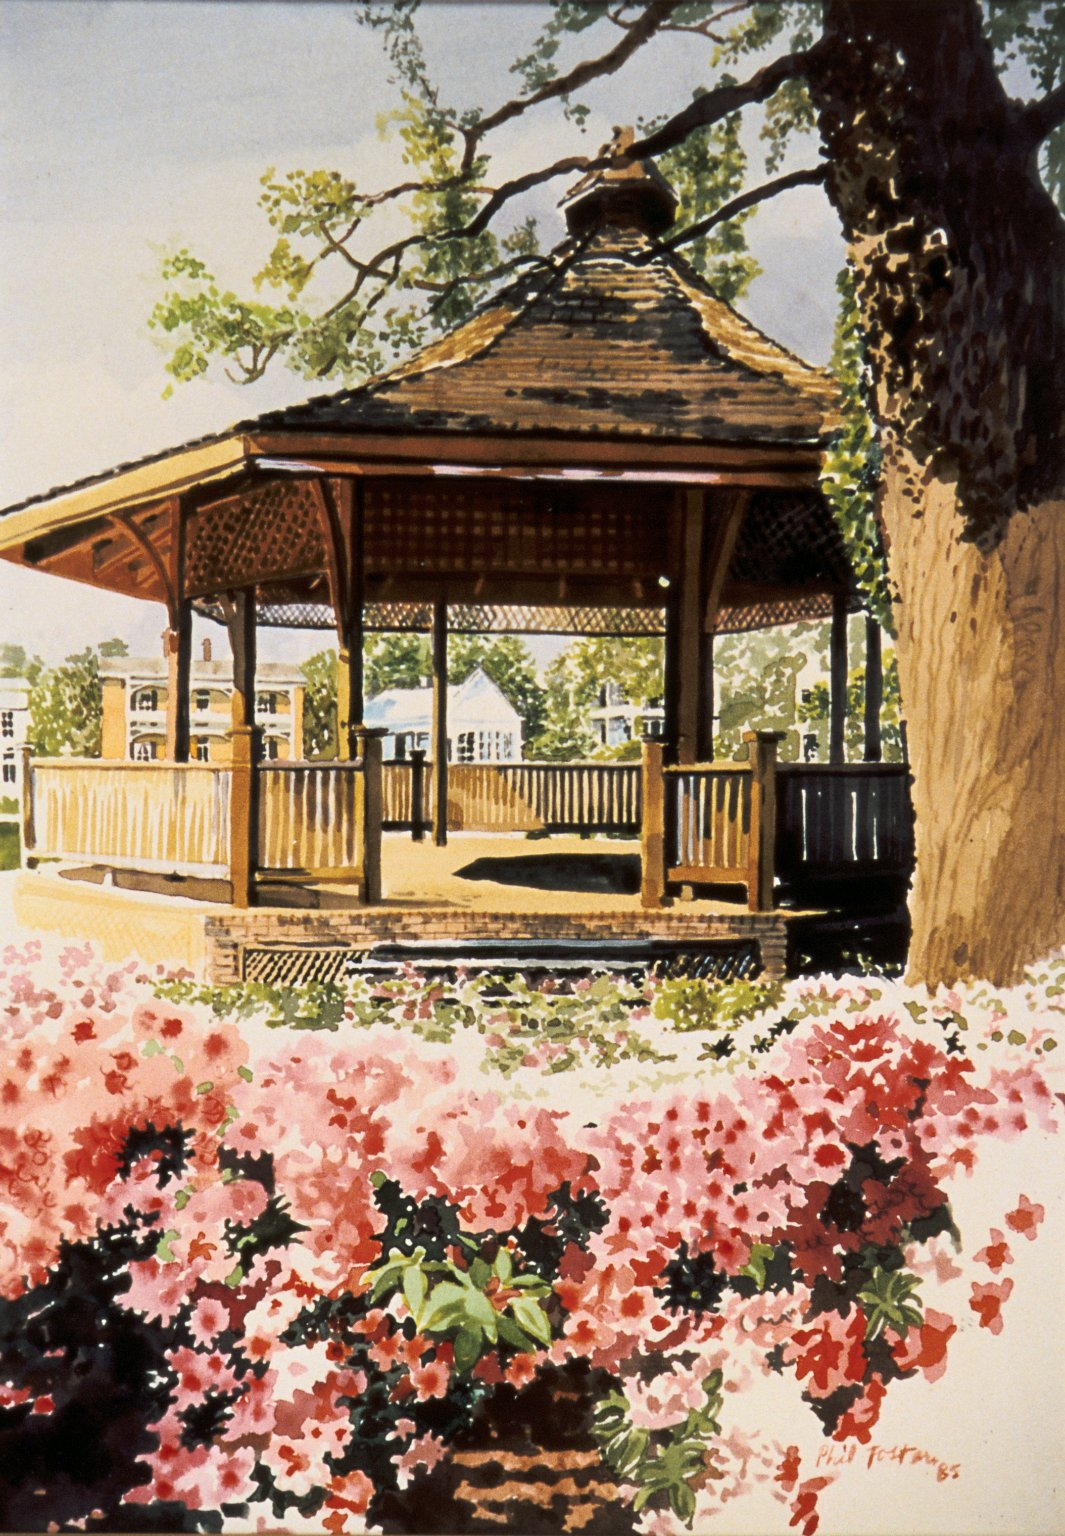 Gazebo with Flowers